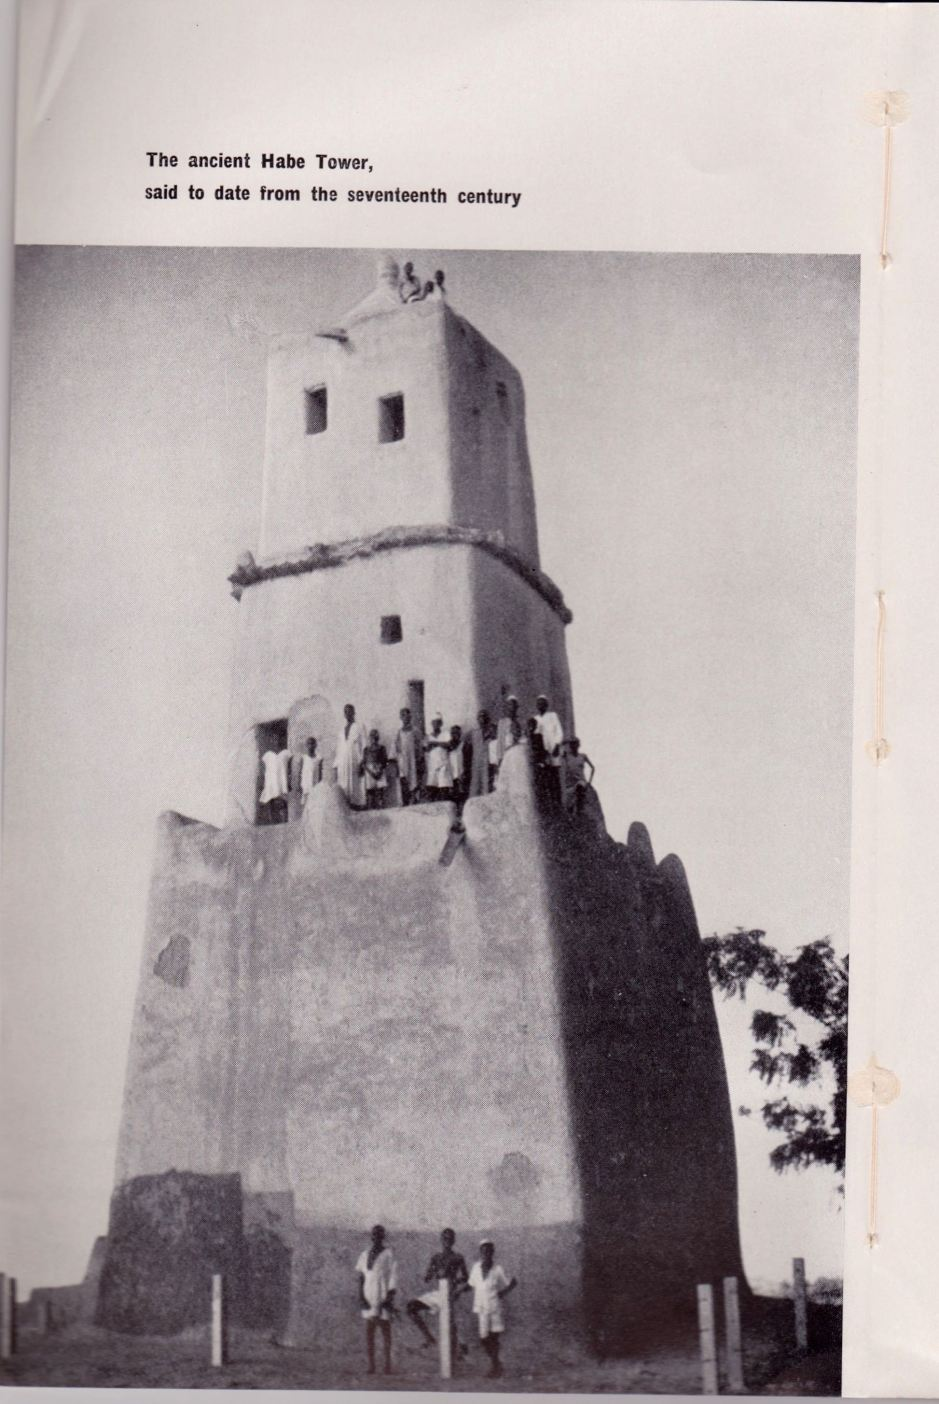 Gobarau Minaret built between 1348-1398 using baked clay and mud. Nigeria Magazine #51, 1956